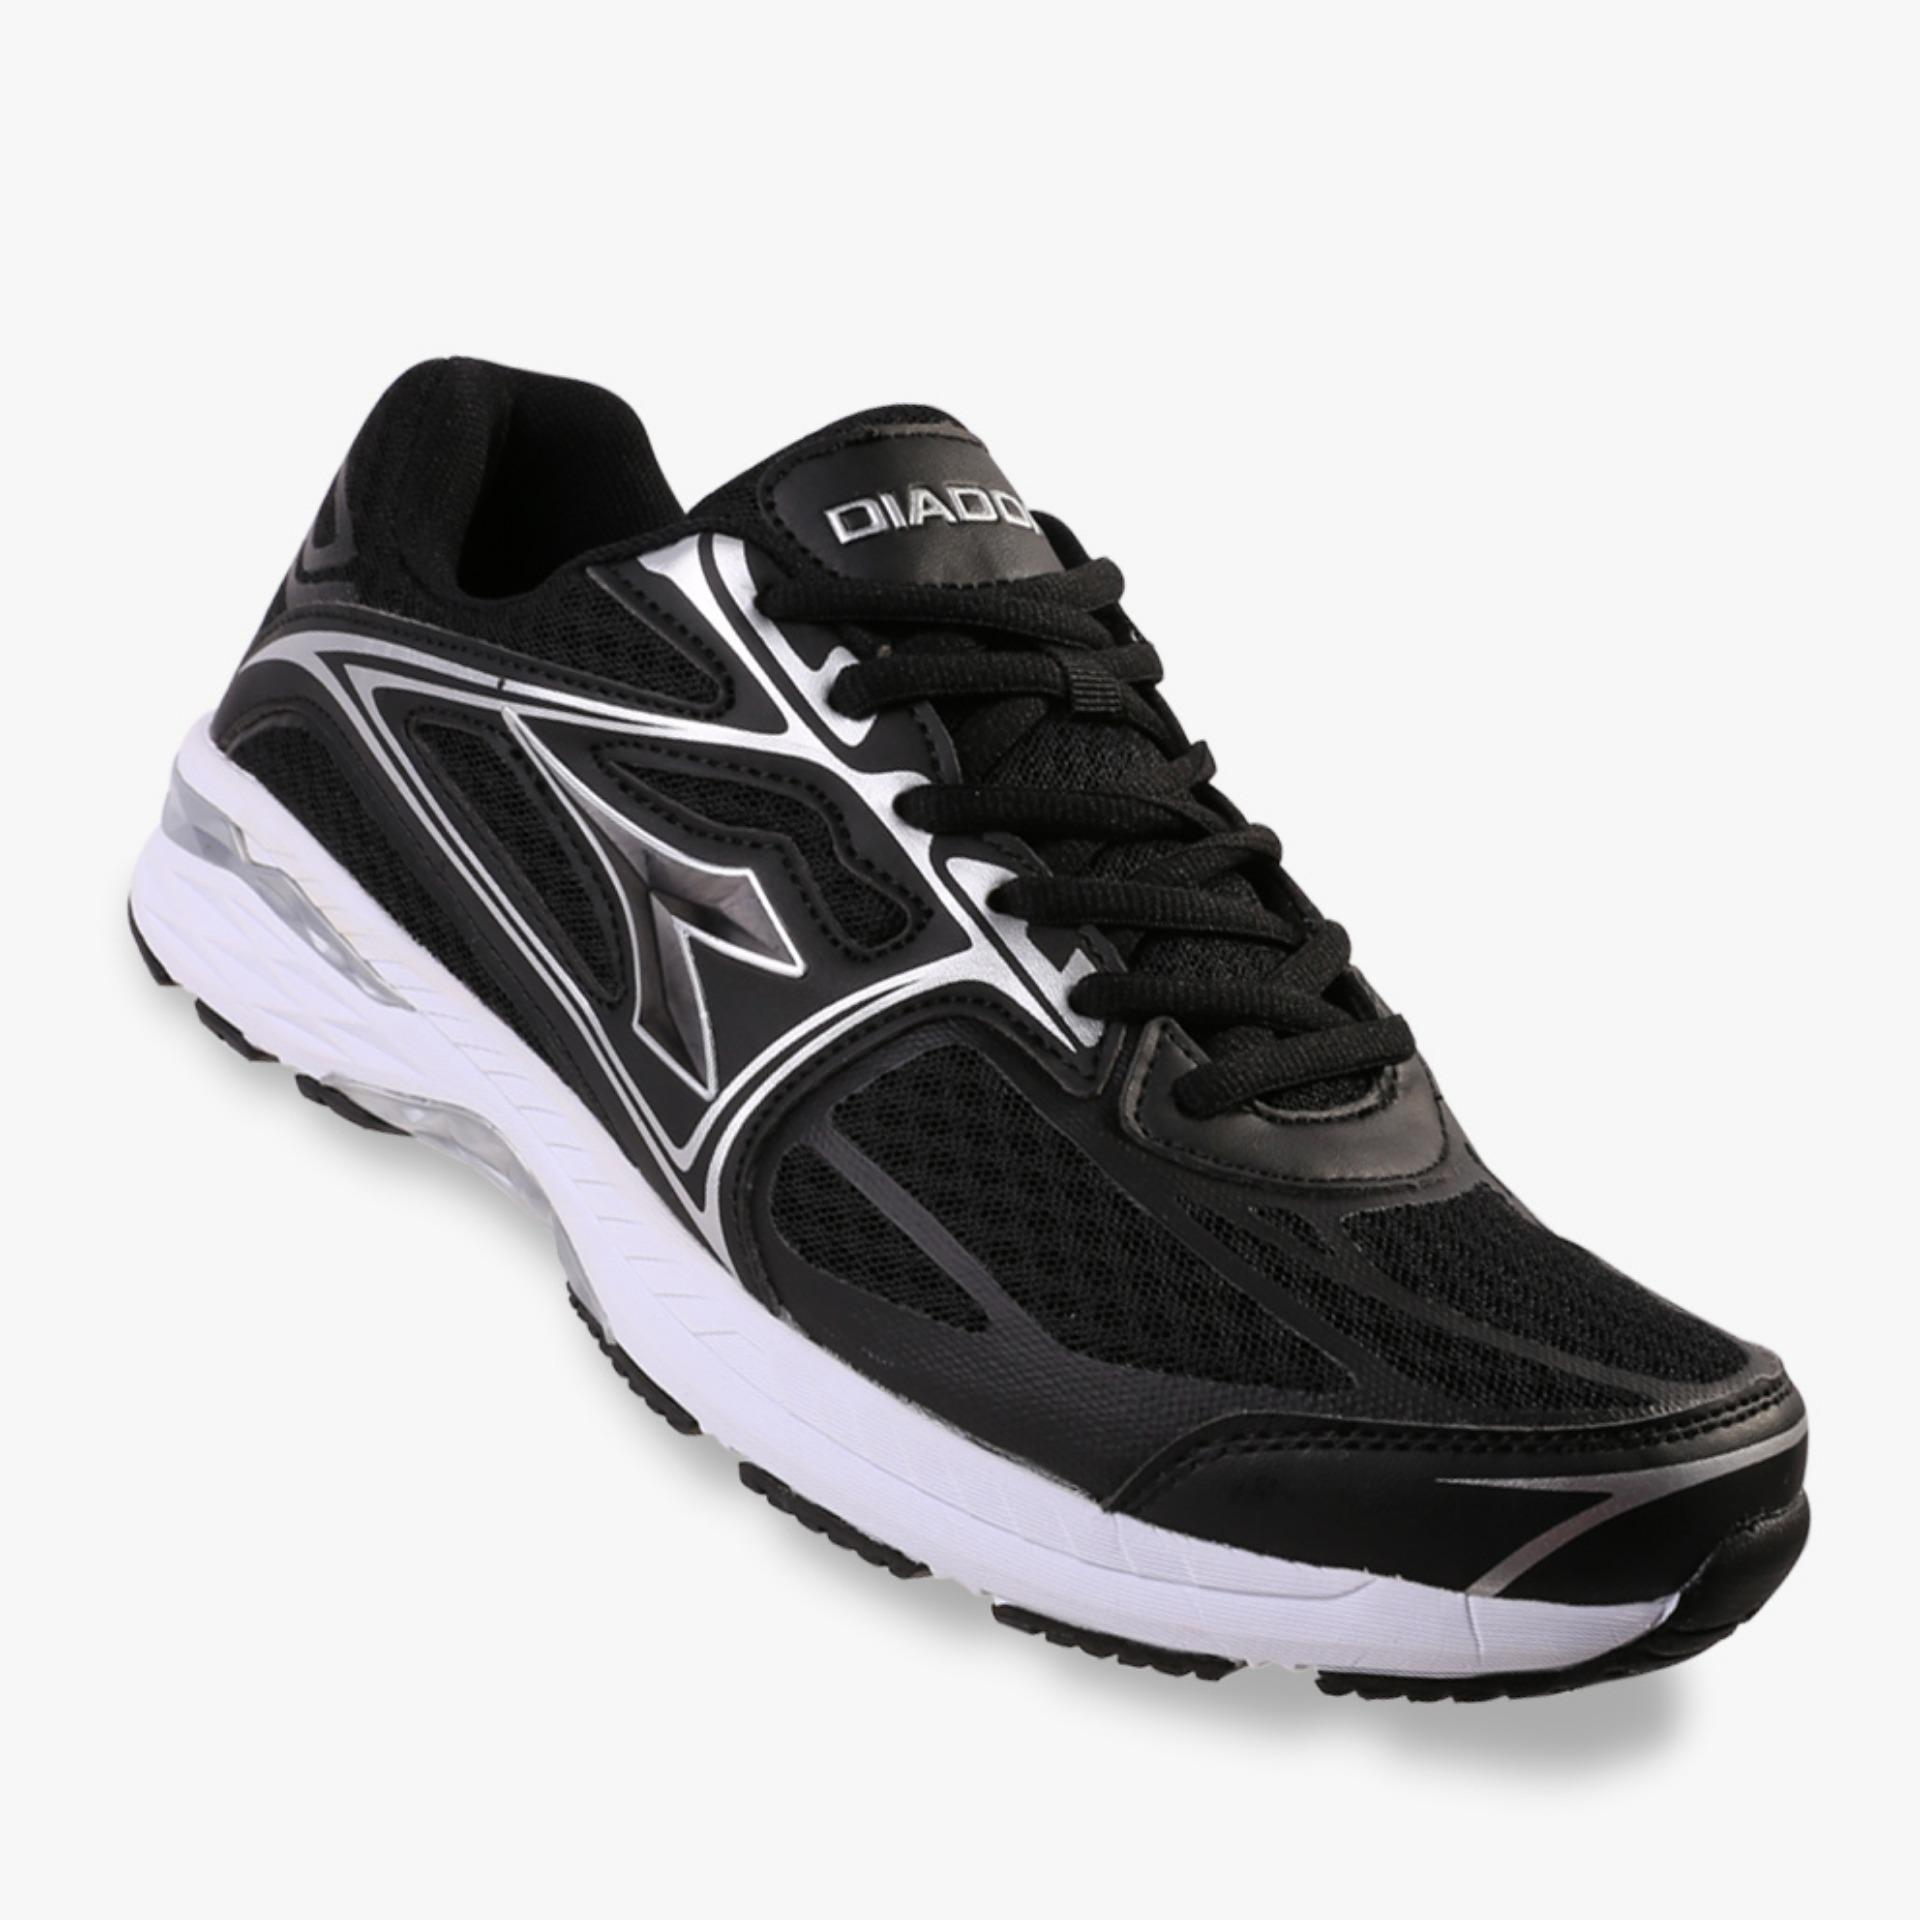 Diadora Fabio Men S Running Shoes Hitam Original